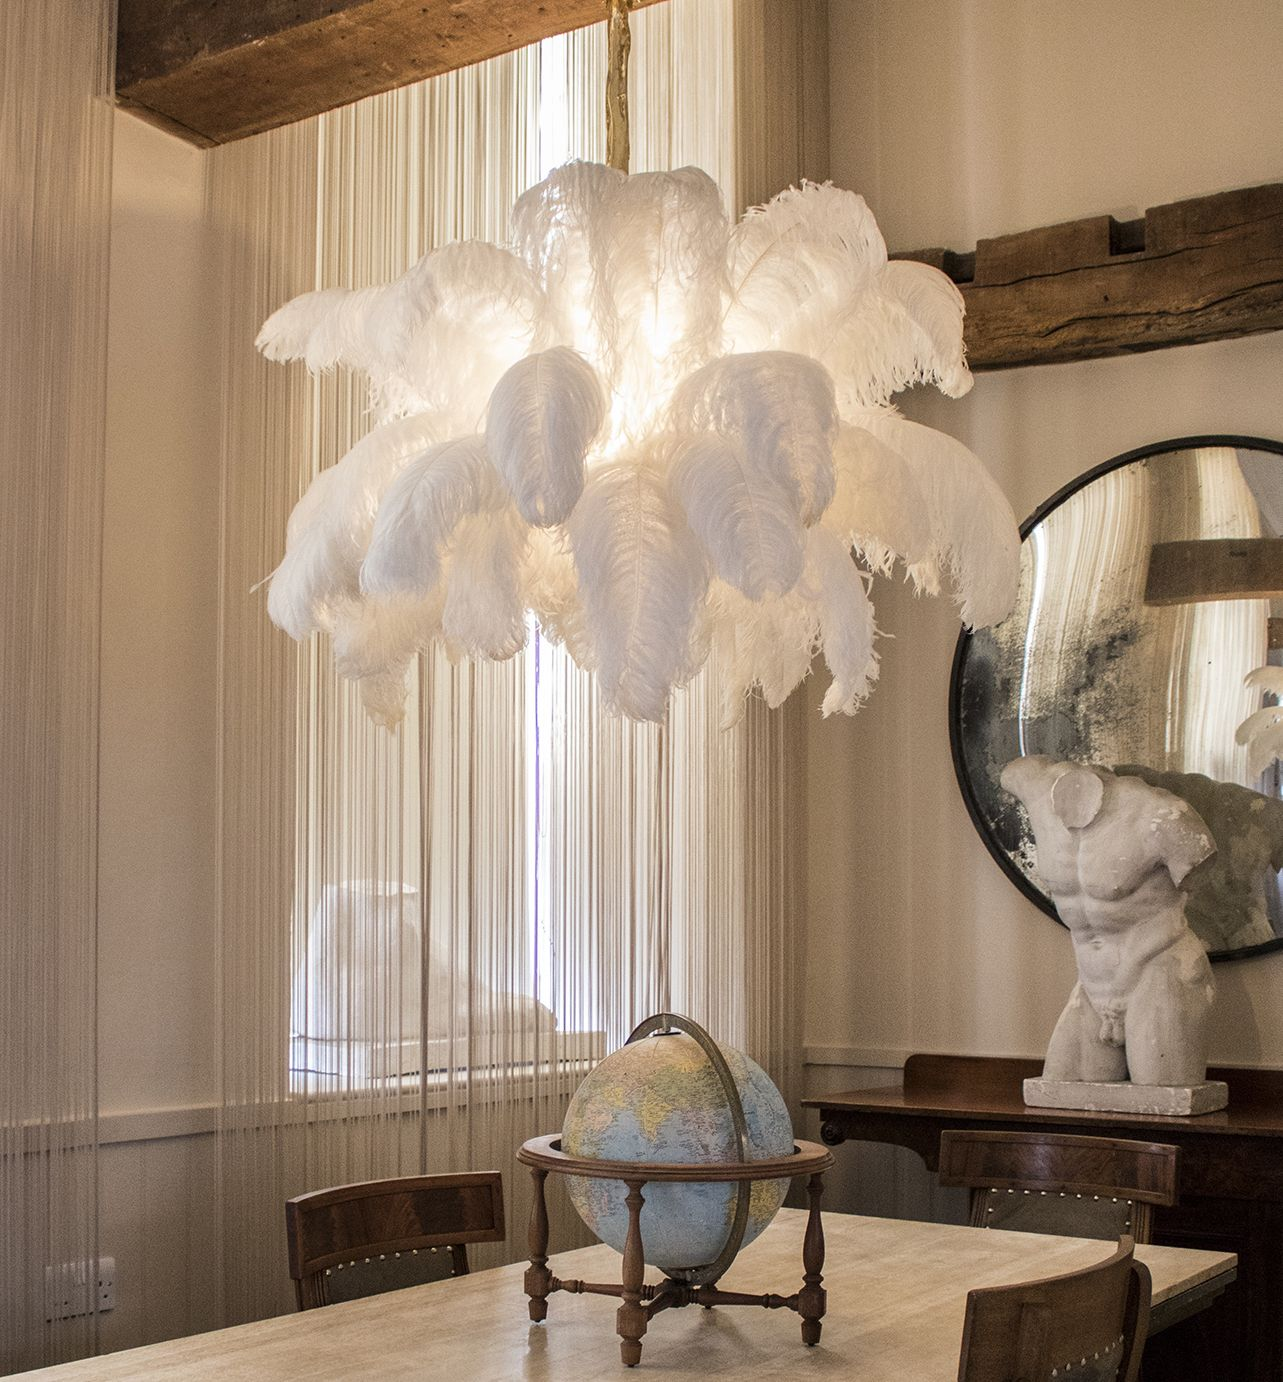 The Feather Chandelier For More Information On Our Chandeliers Please Contact Info